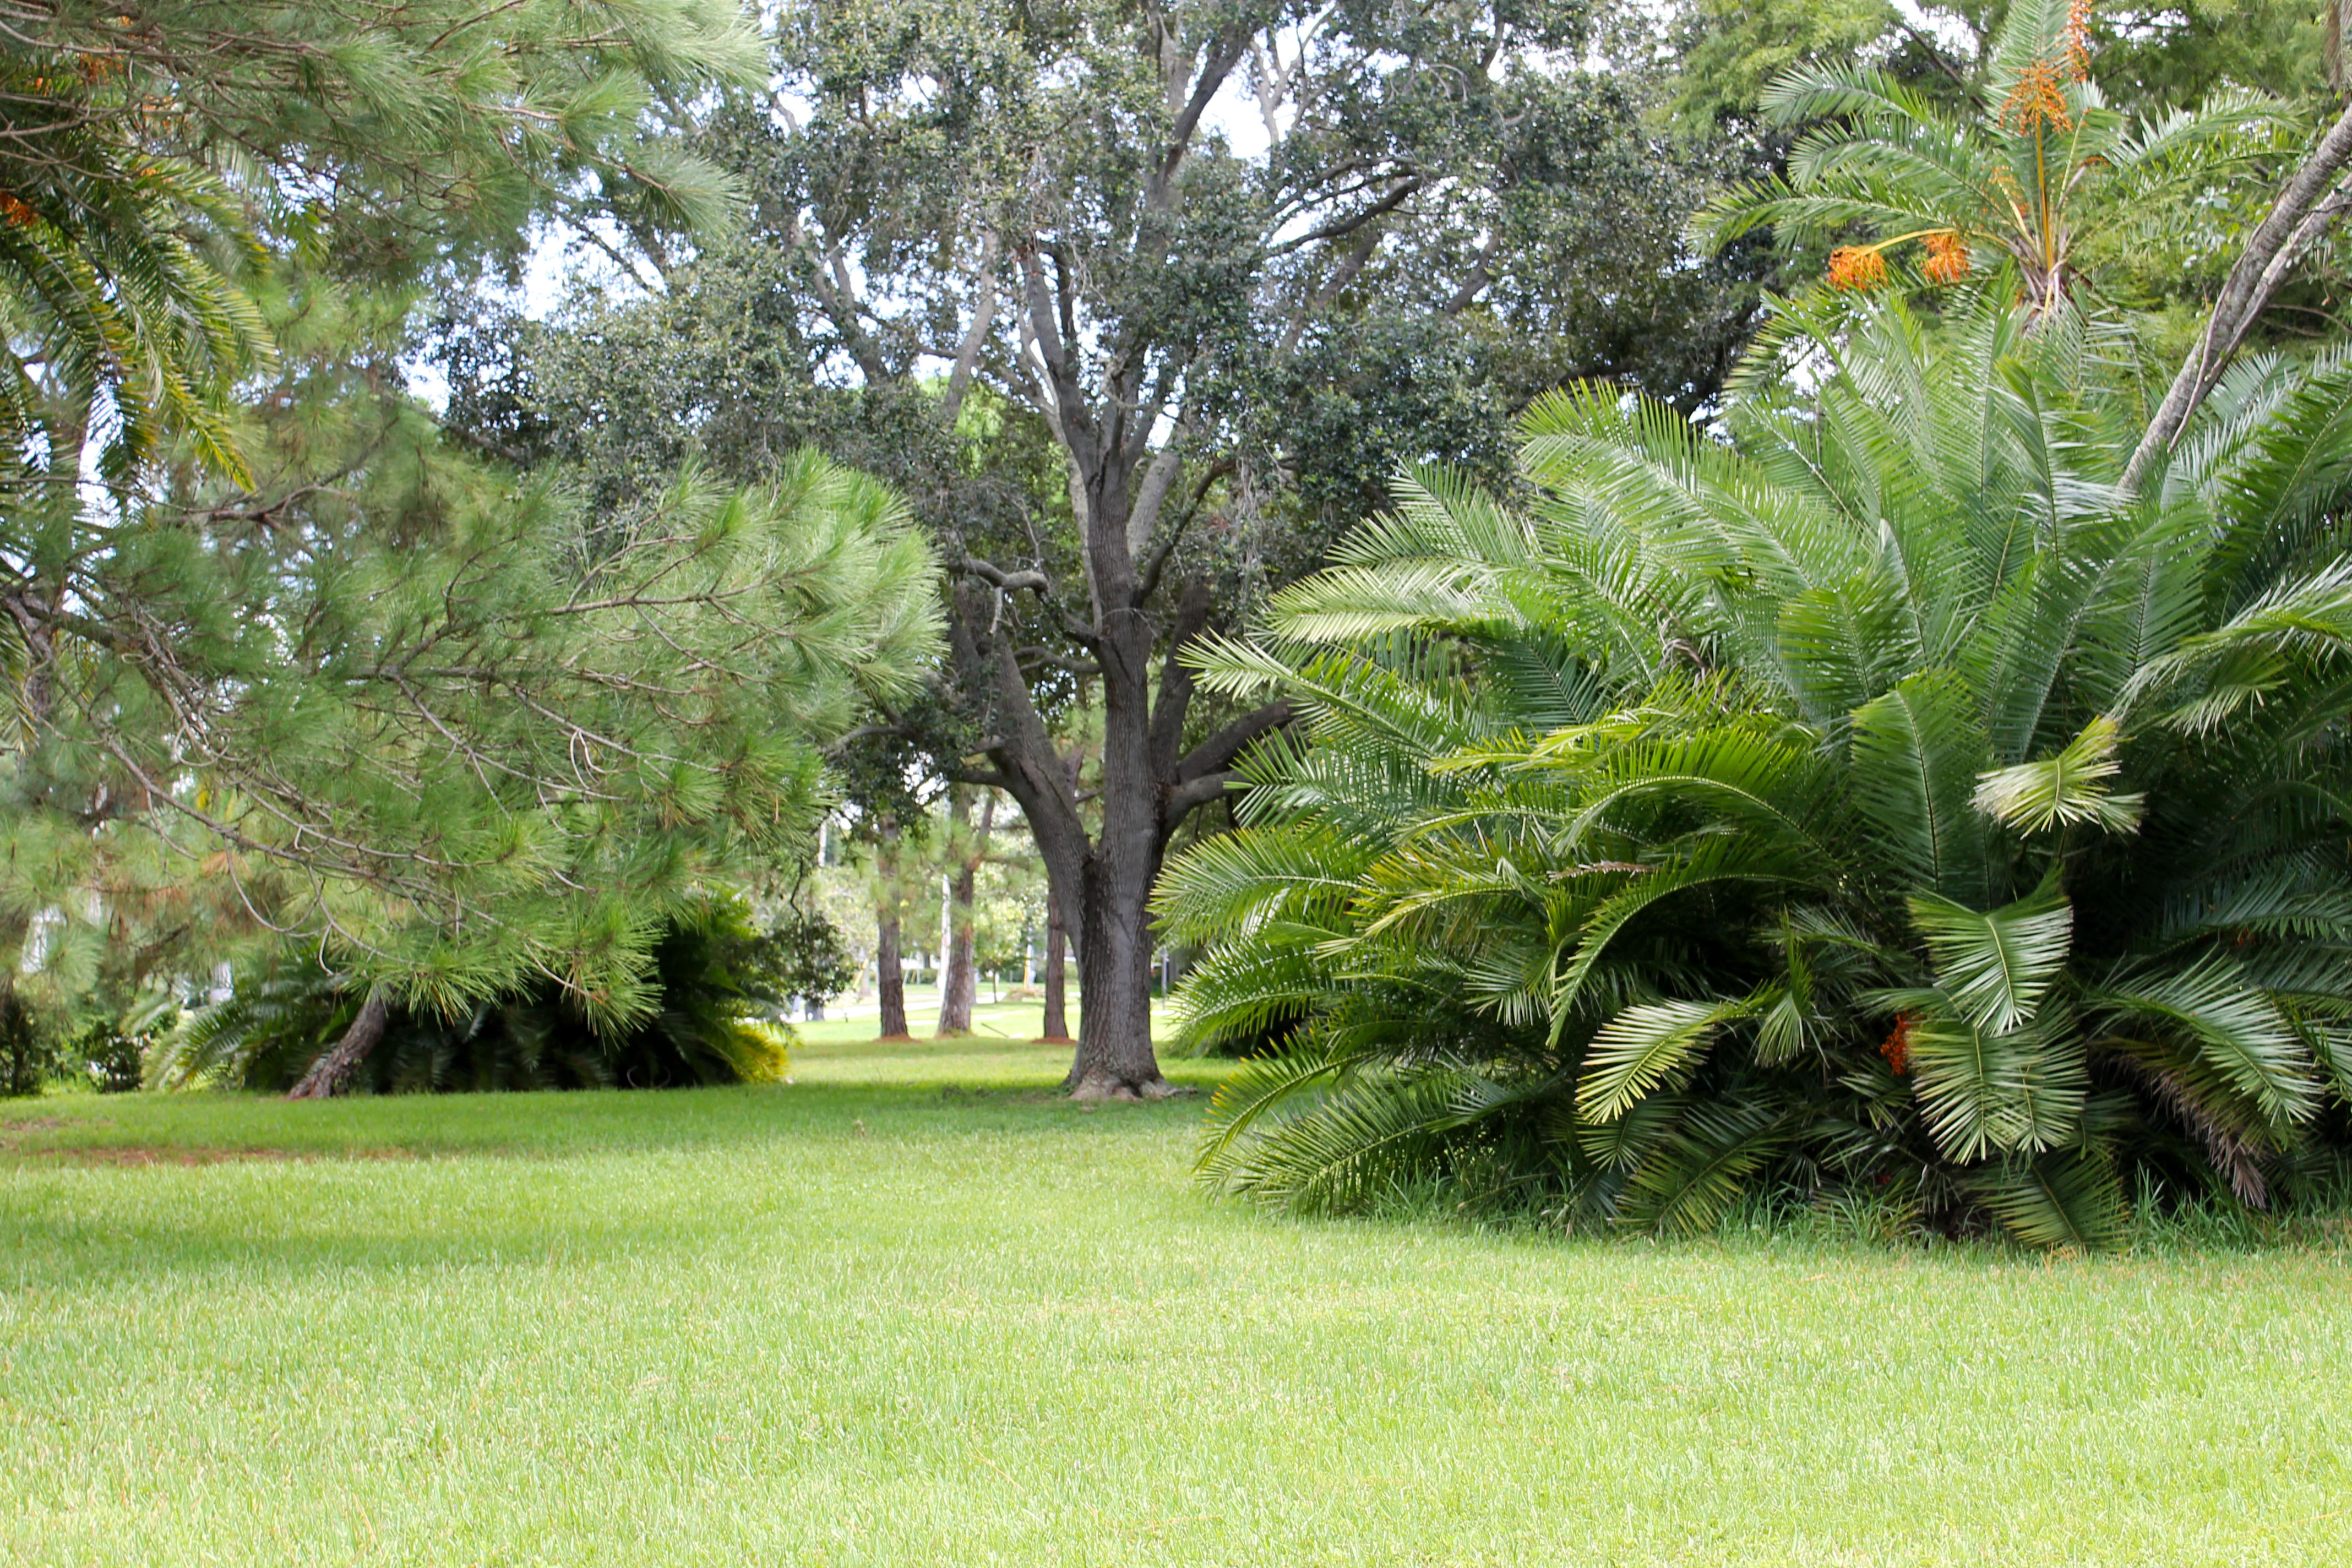 A grassy area in Pinellas Park with large shrubs and trees in the background